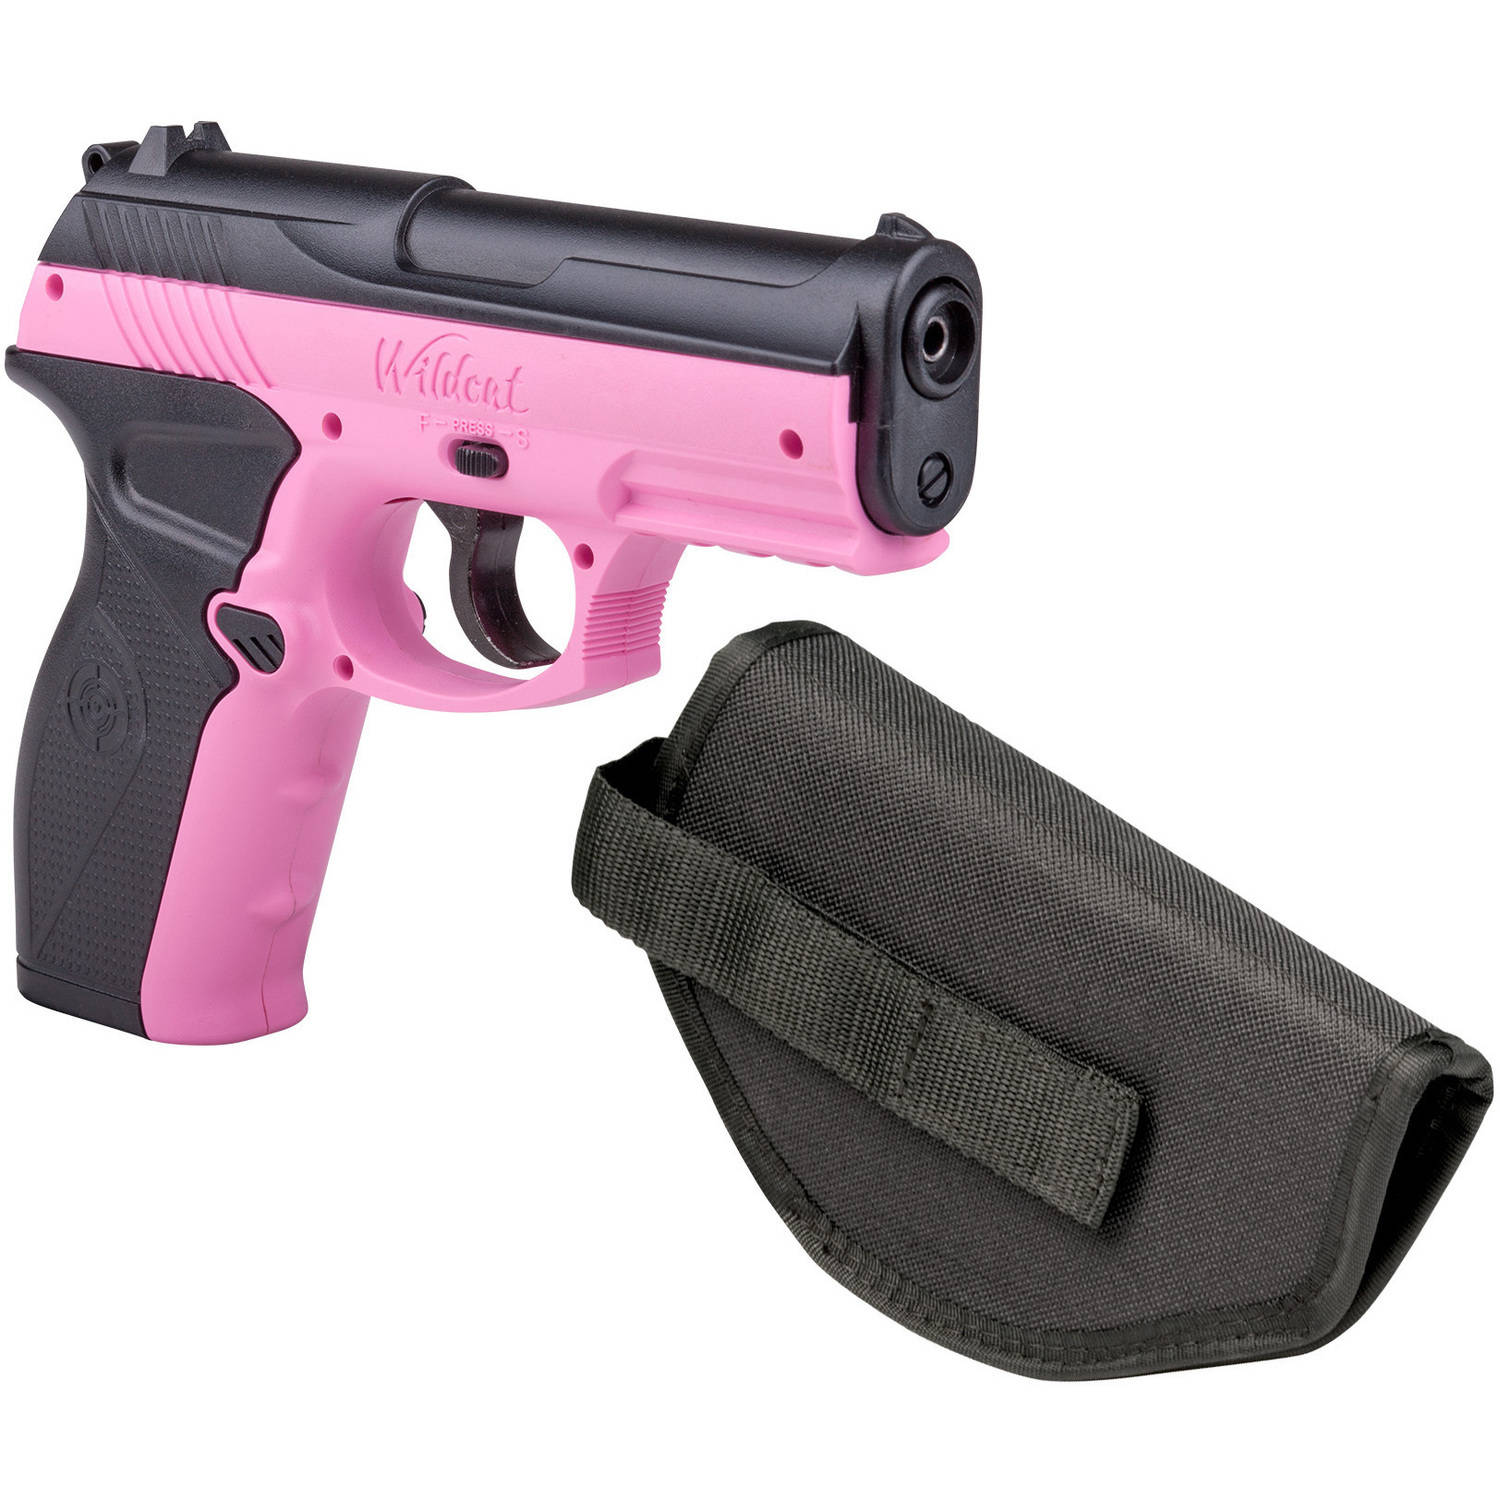 Crosman Pink P10 Wildcat .177 Caliber Semi-Auto CO2 Air Pistol with Holster, 480fps